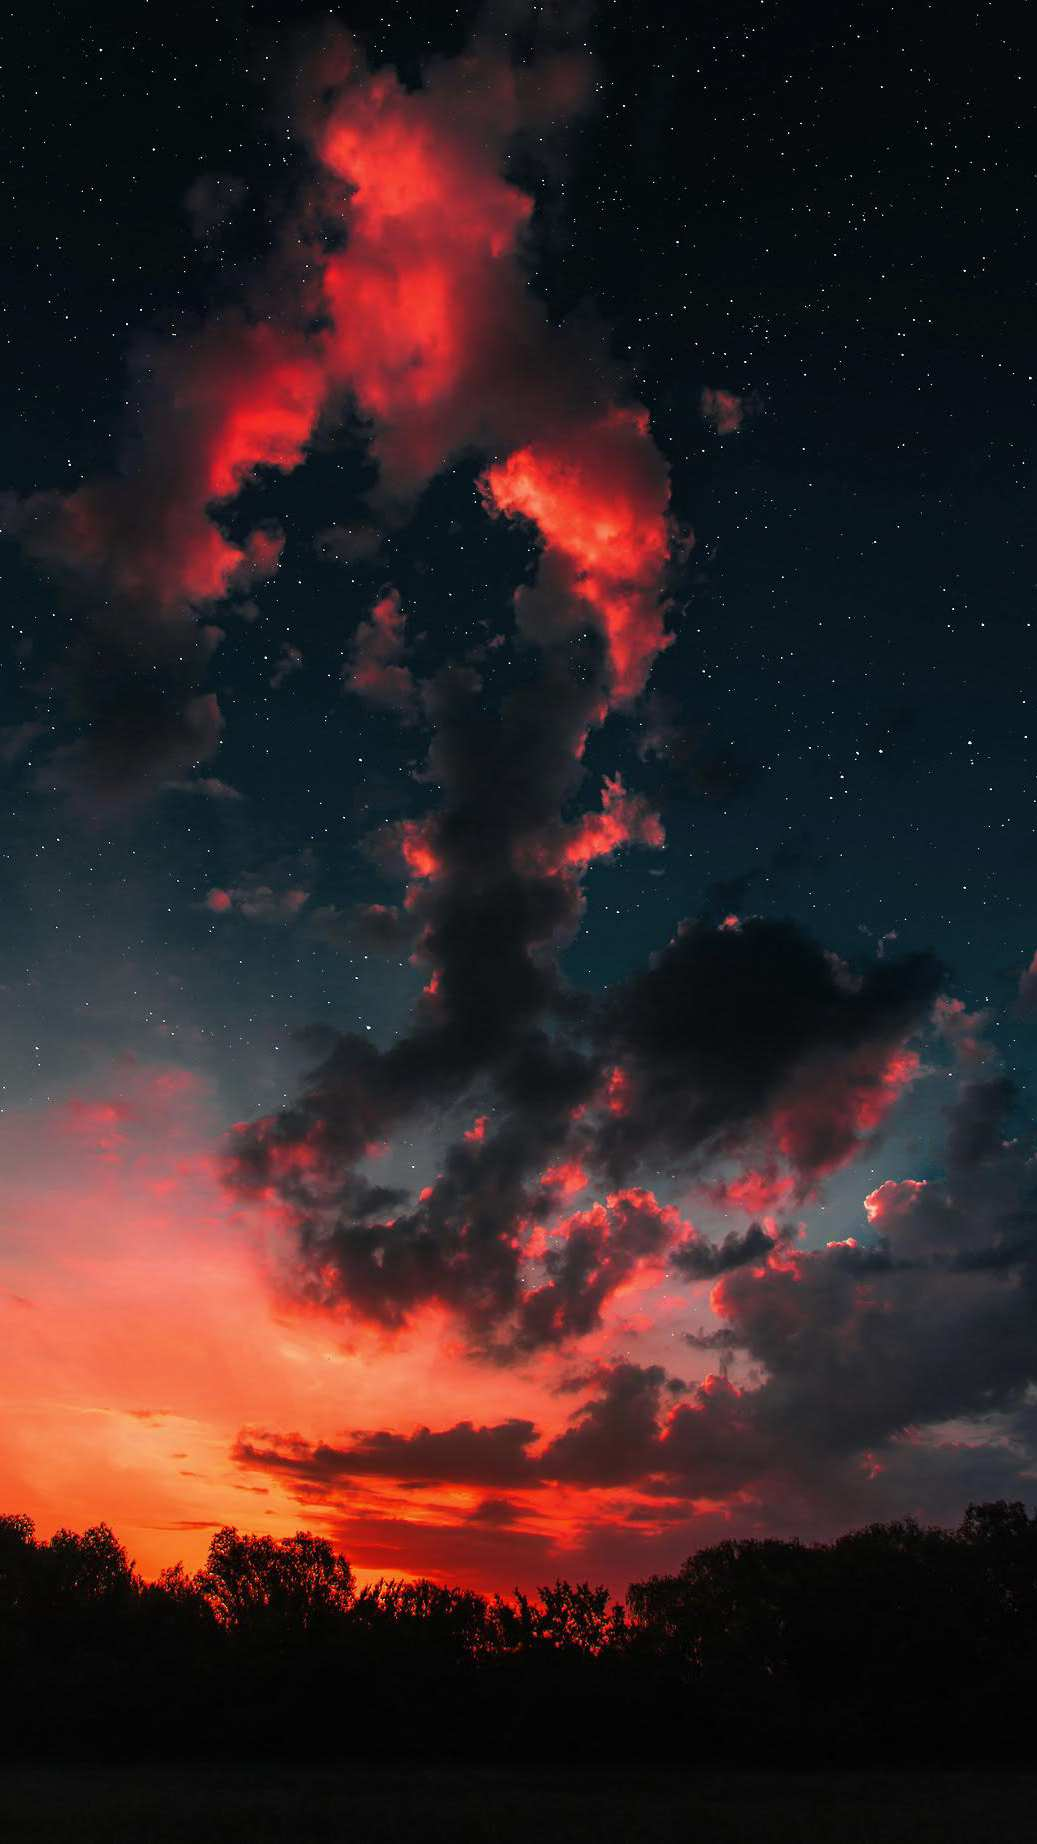 Cute Wallpapers Hd With Quotes Sunset Clouds Space Stars Iphone Wallpaper Iphone Wallpapers